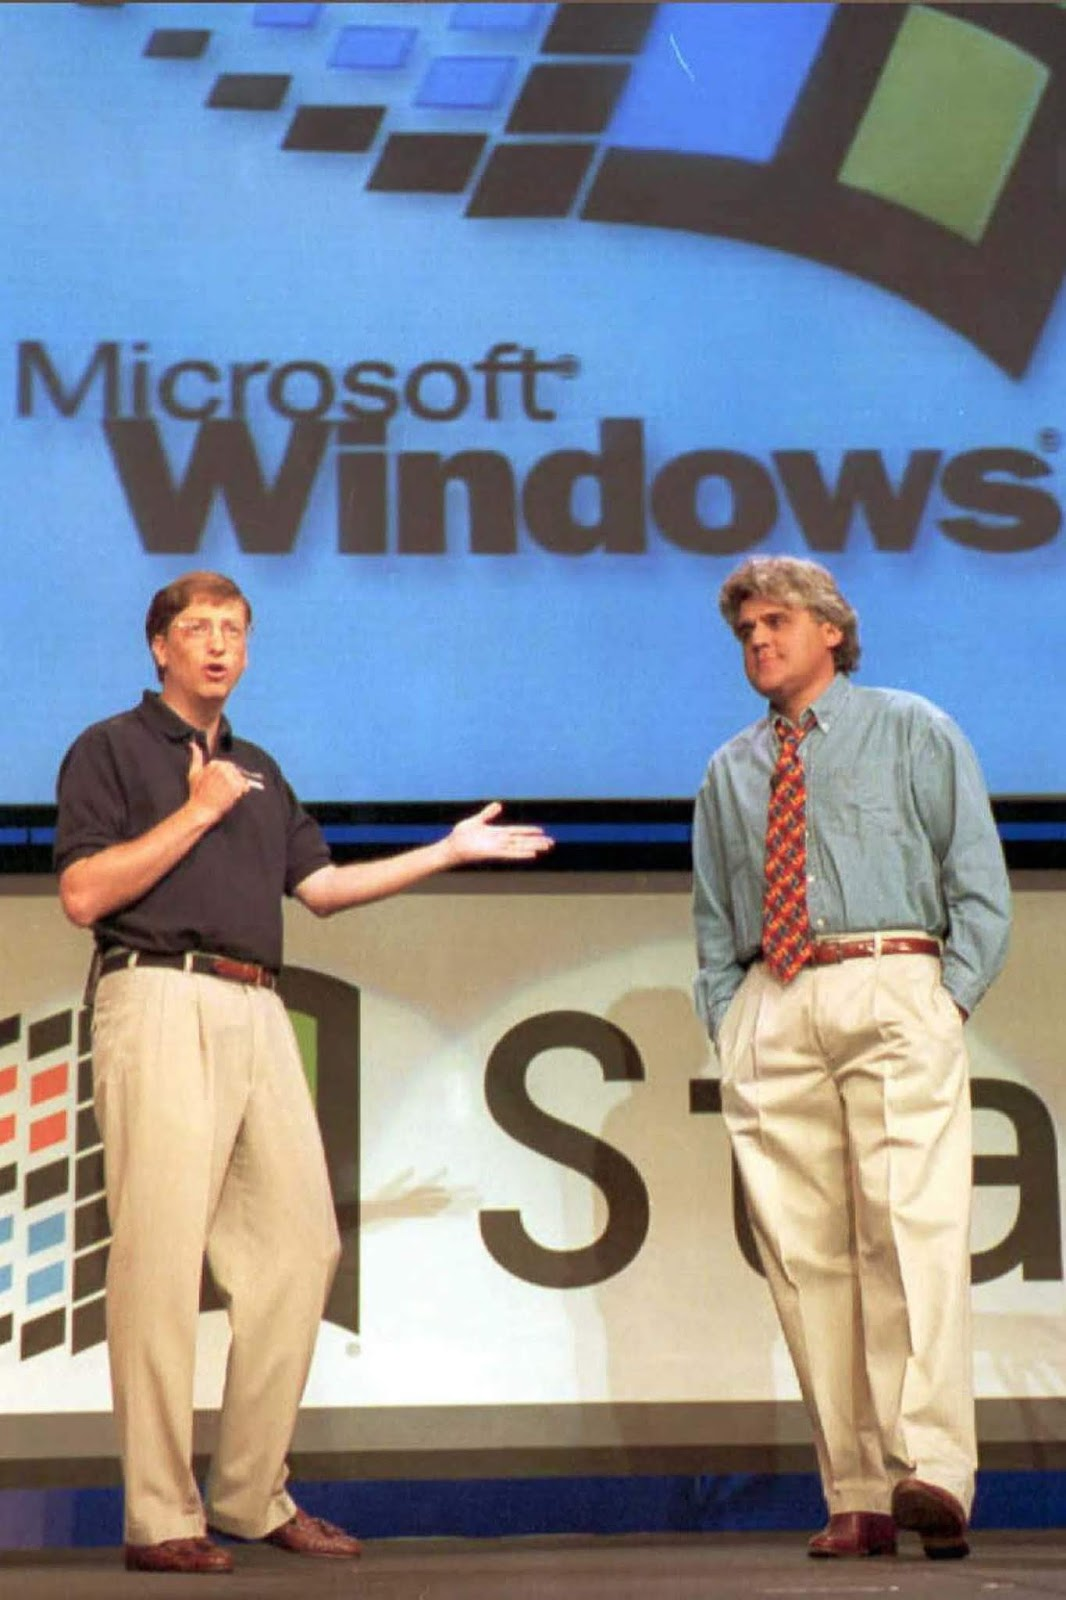 Bill Gates is joined by comedian Jay Leno at the Windows 95 kickoff event in Redmond, Washington.